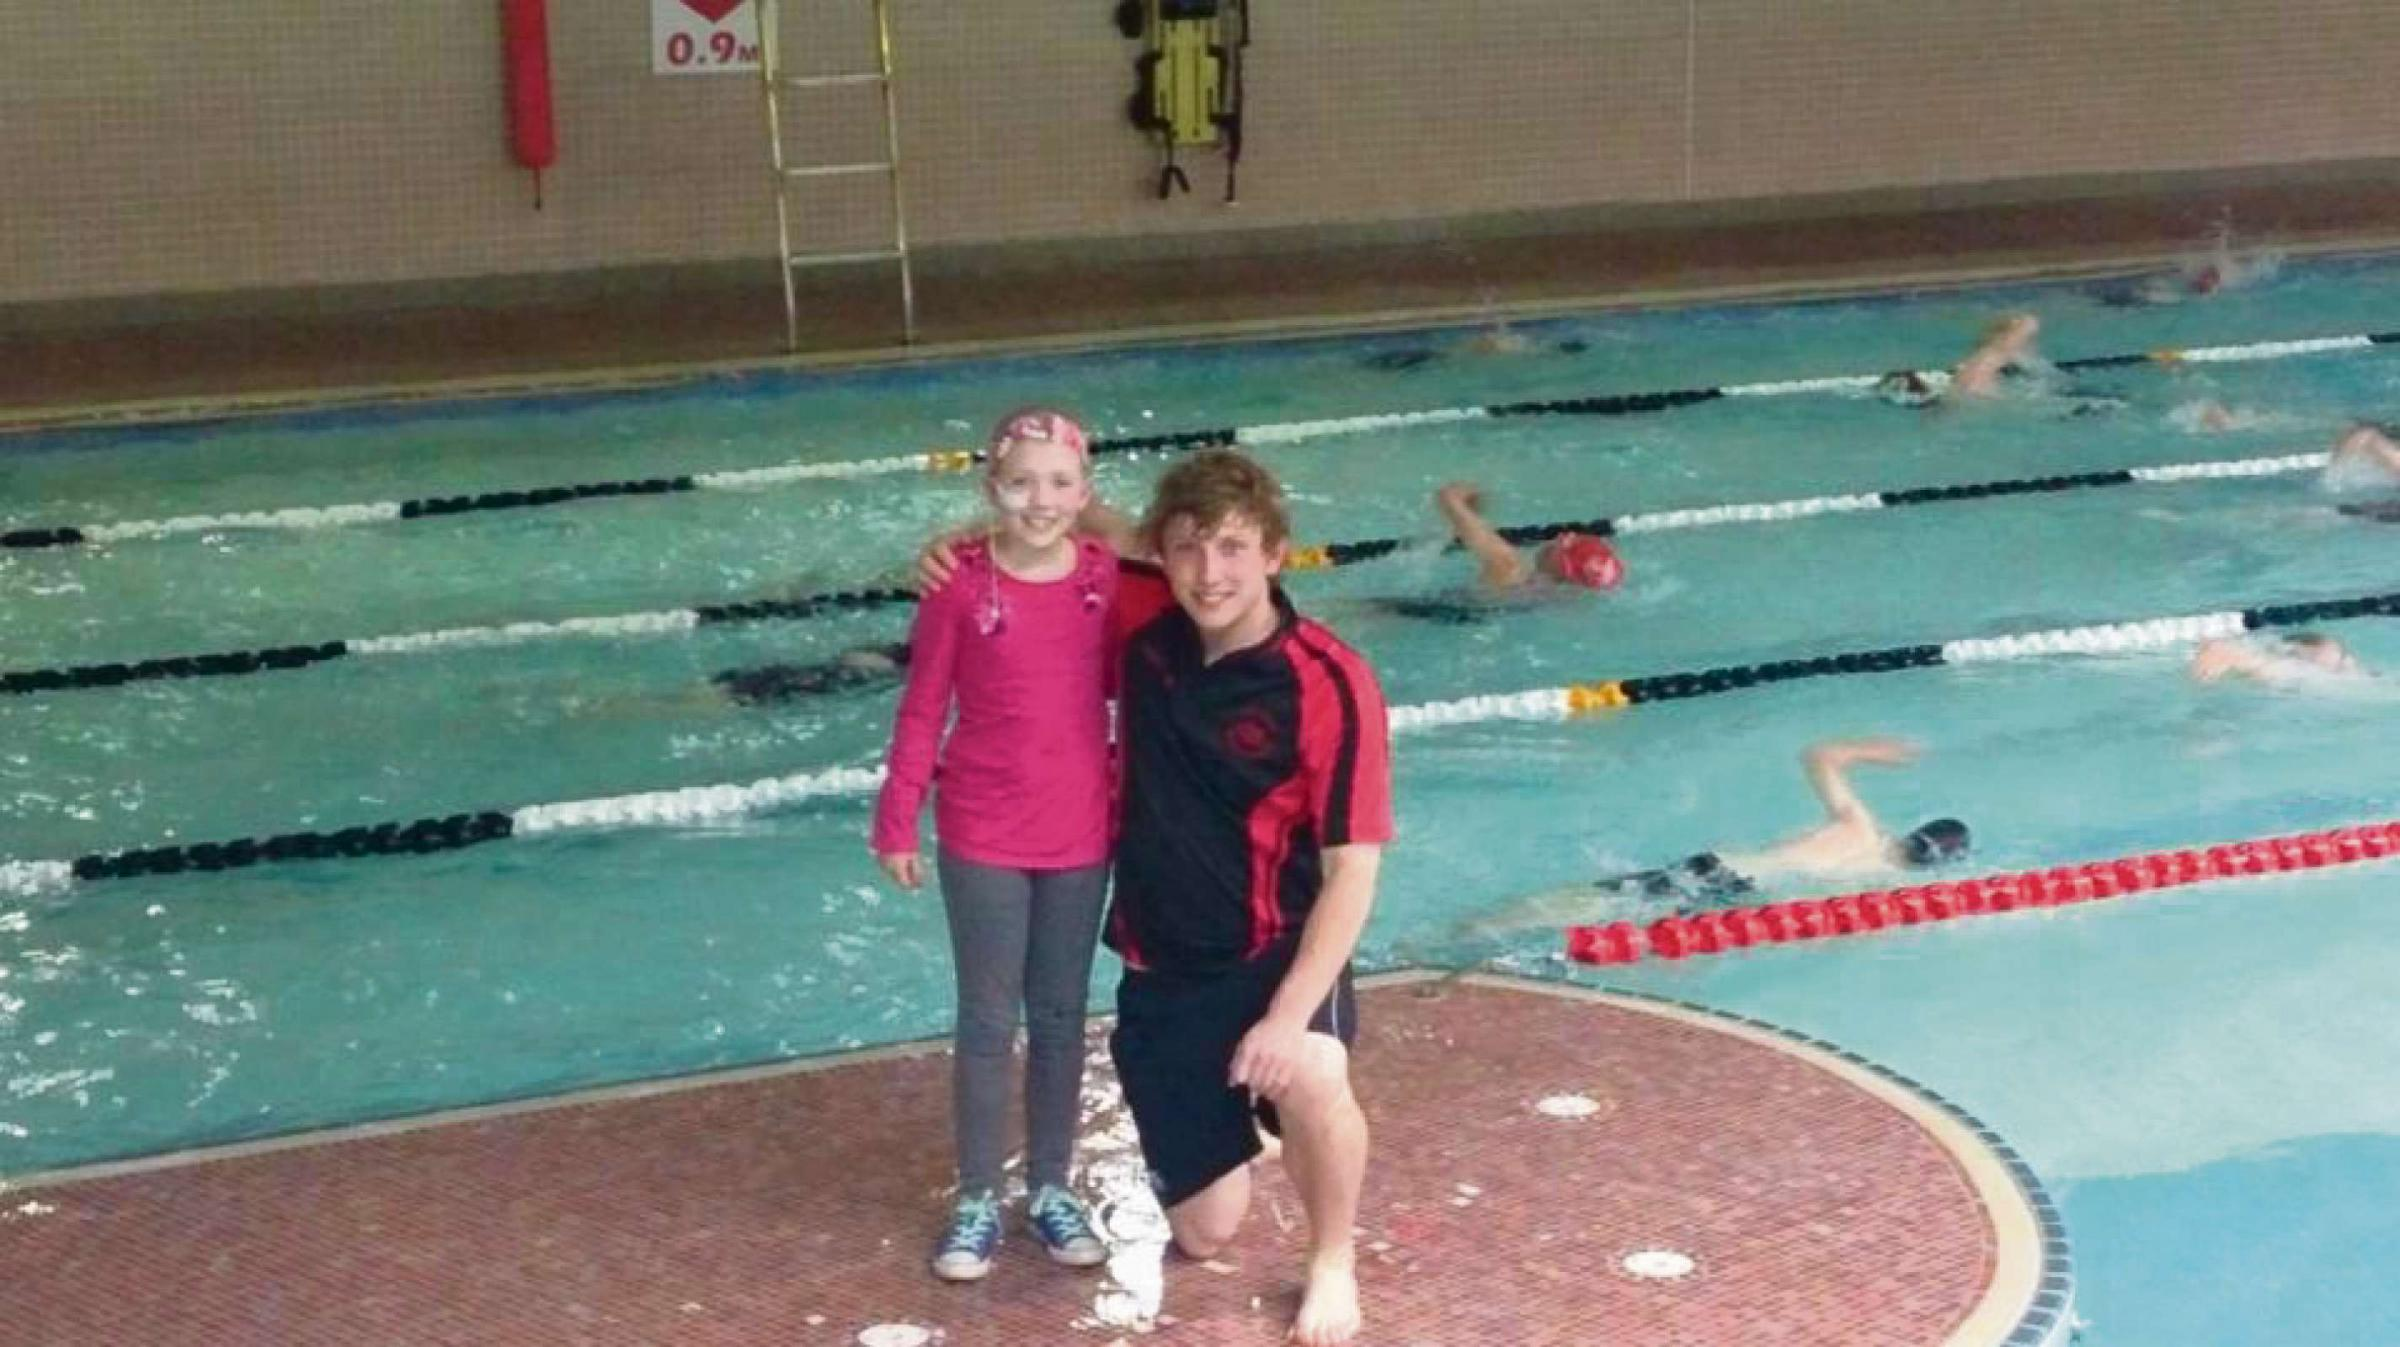 GREAT LENGTHS: Gaby Alderson with Northallerton Amateur Swimming Club head coach Greg Ient at the sponsored swim